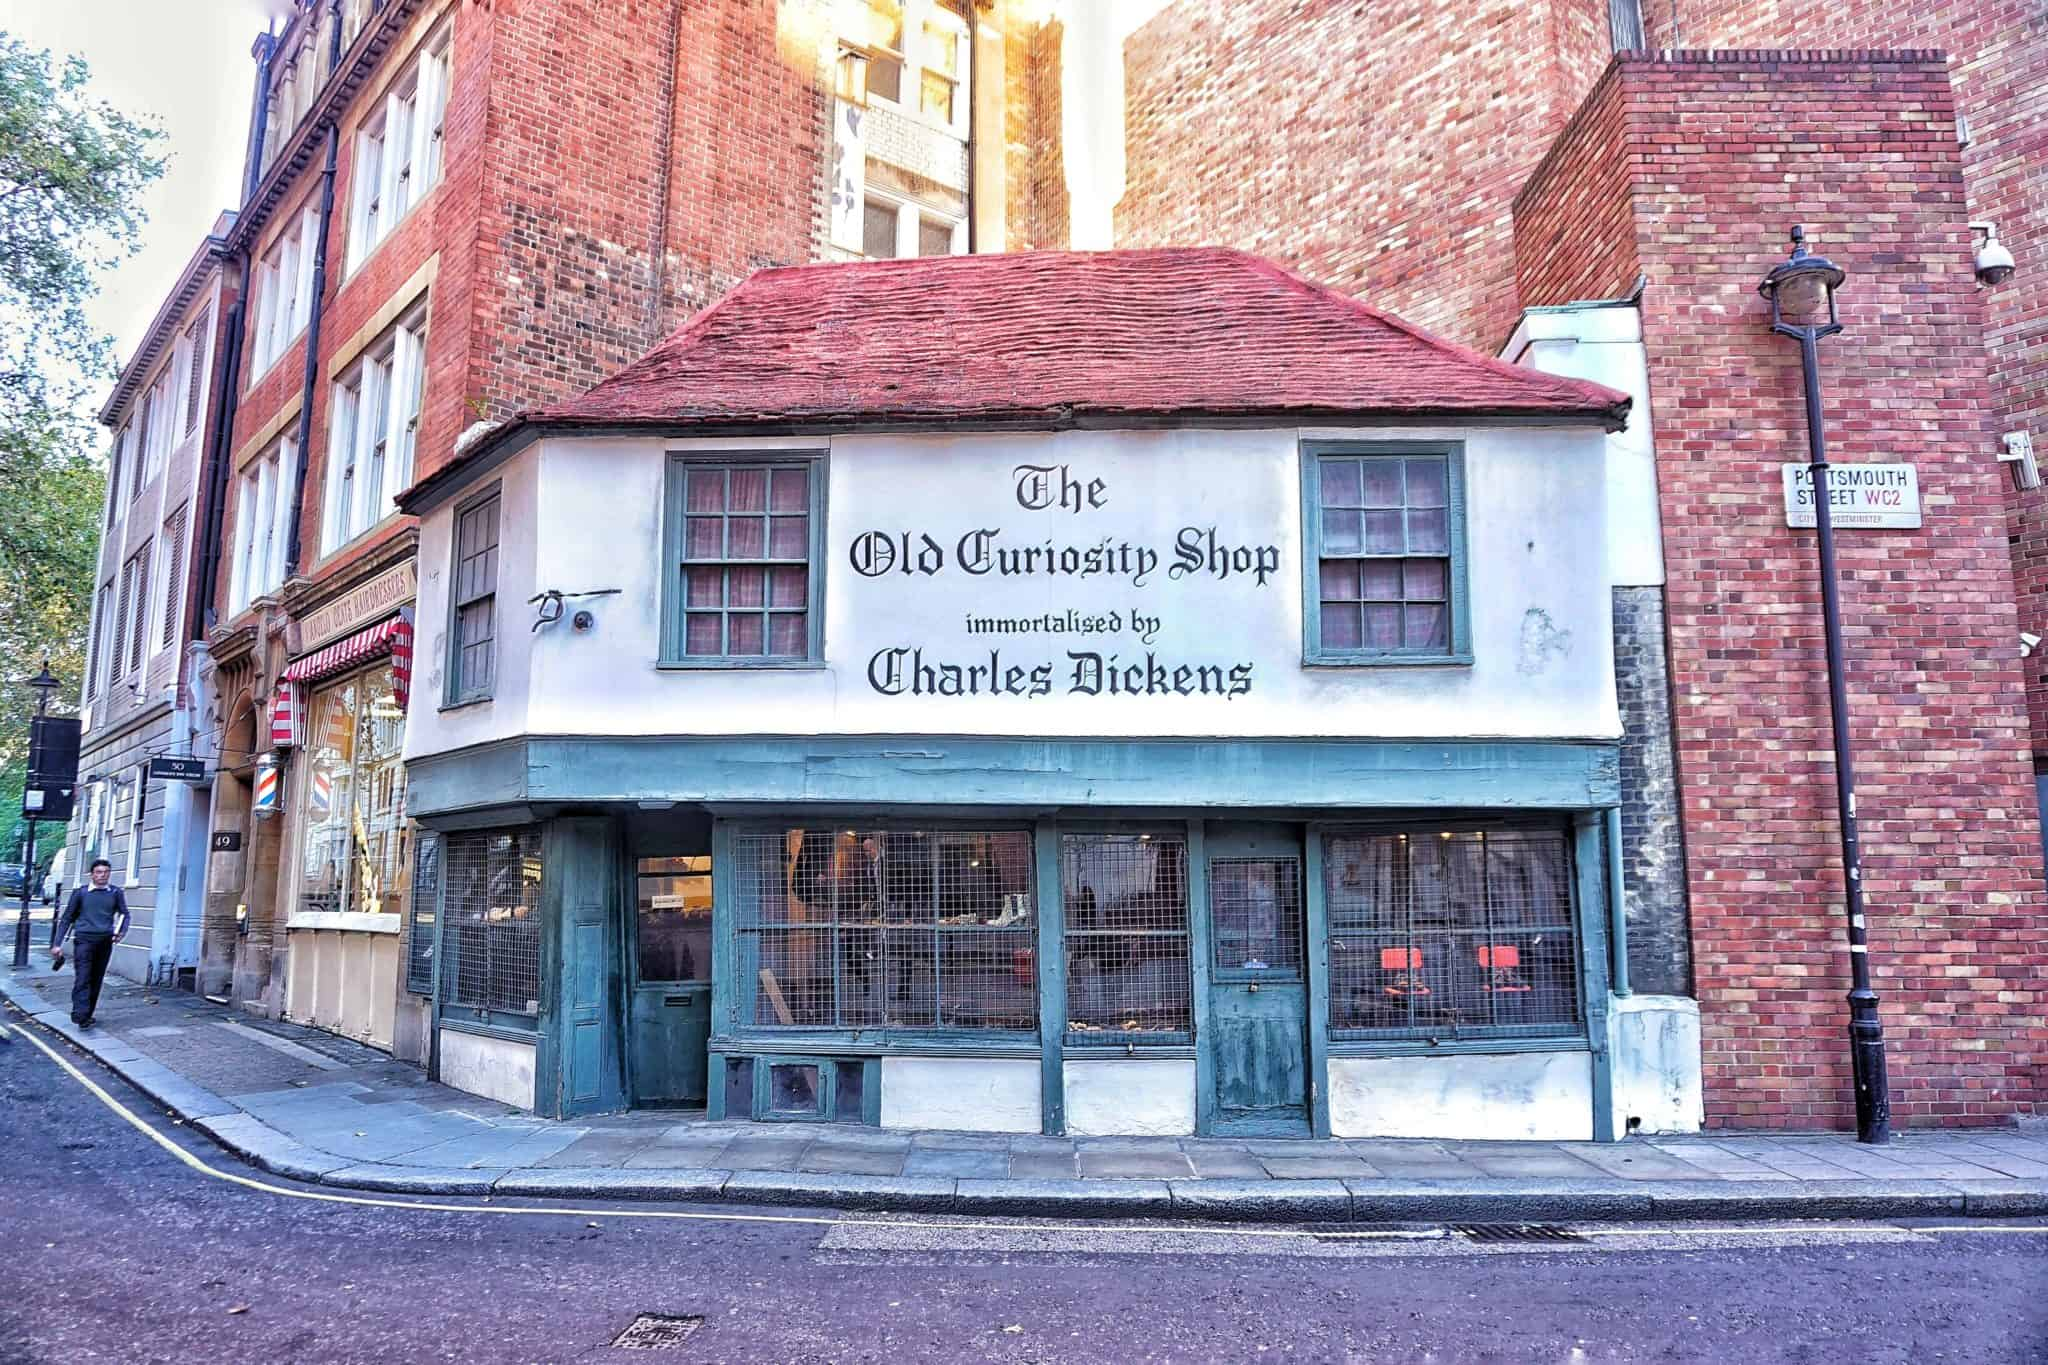 old curiosity shop in london